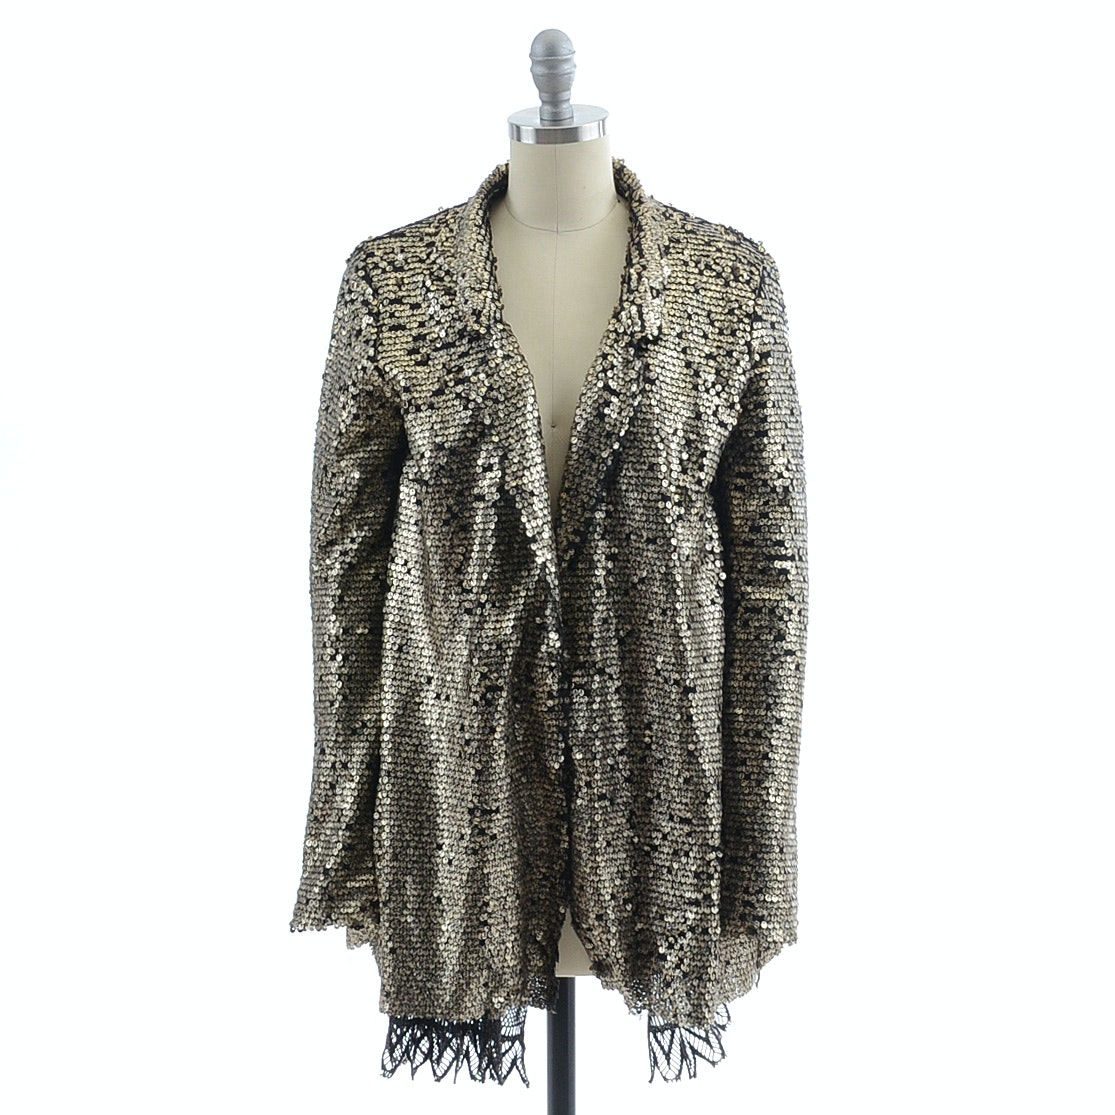 Free People Embellished Mesh and Crochet Lace Jacket with Reflective Discs